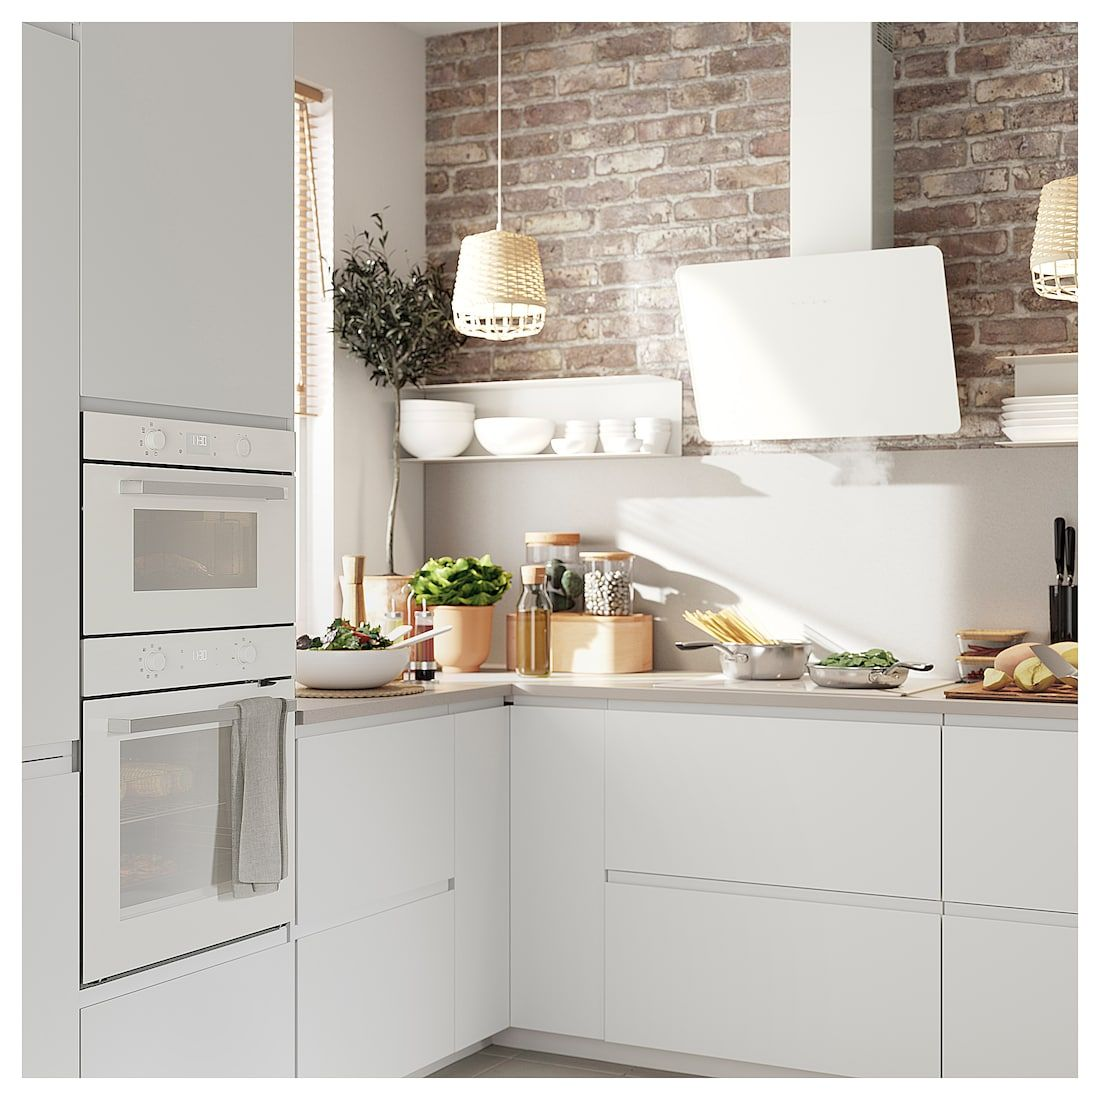 BEJUBLAD Wall mounted extractor hood white in 2020